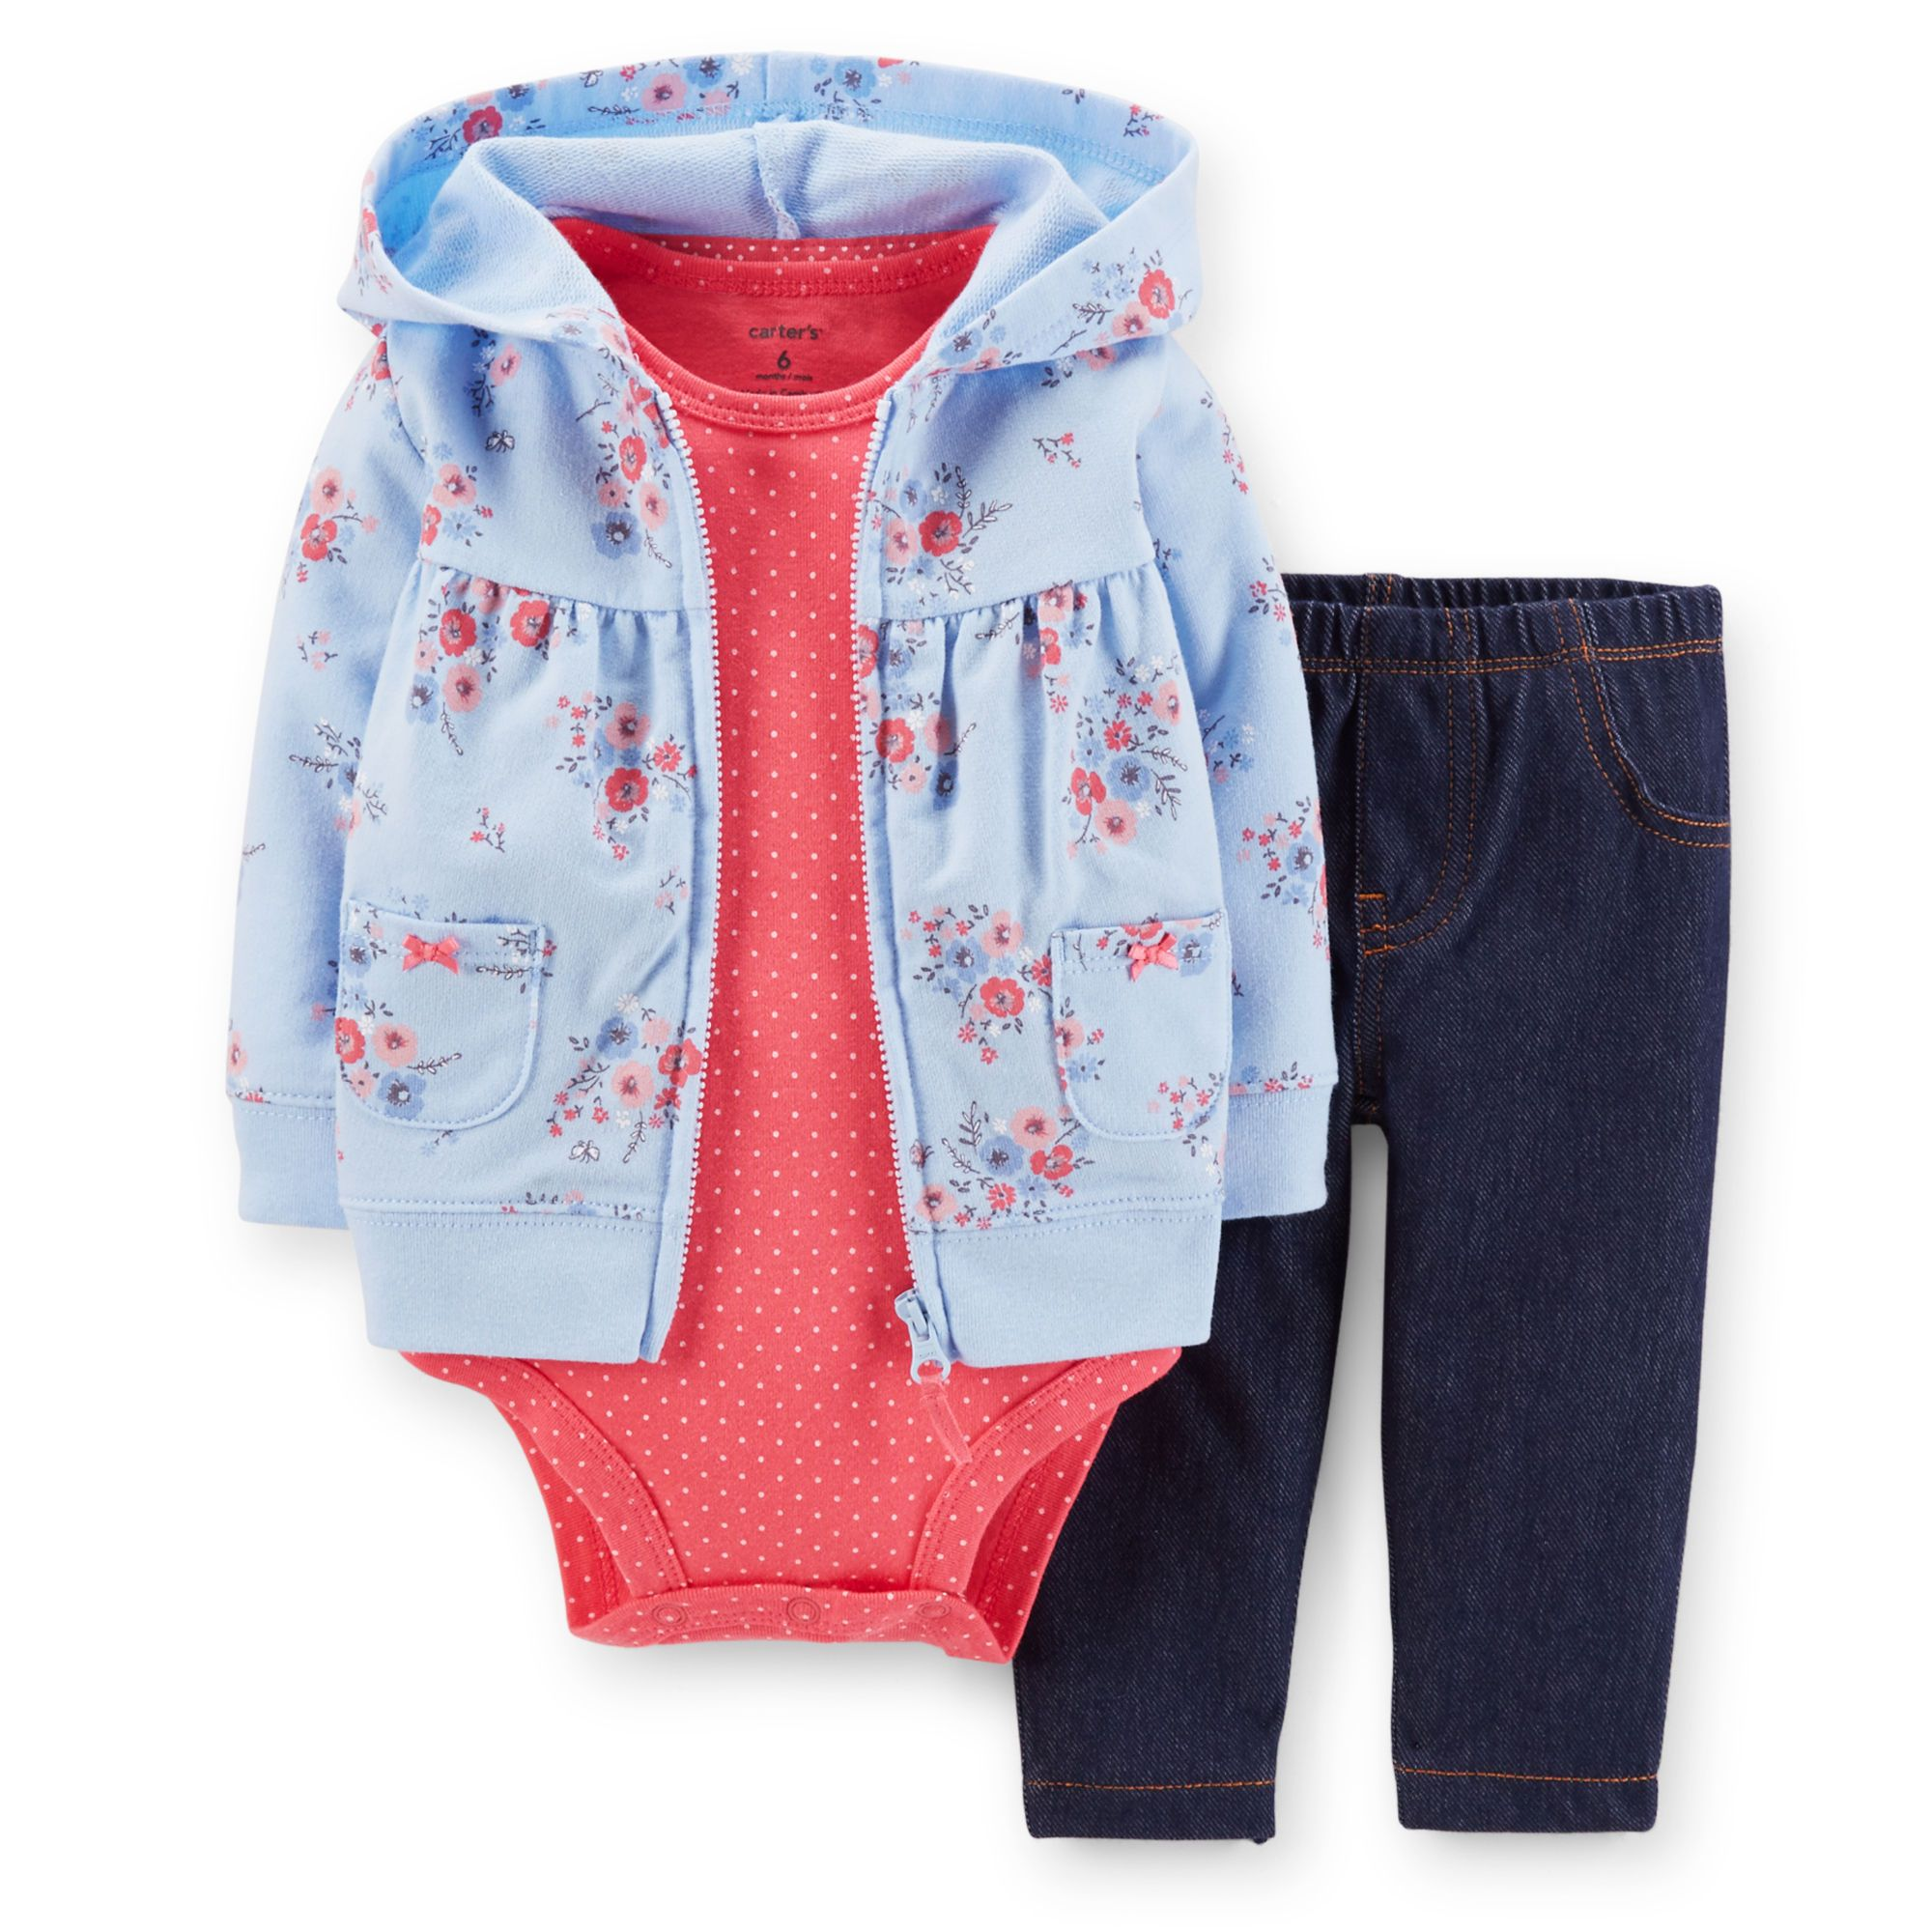 Perfect for playtime, this set has everything your baby girl needs for a complete outfit. On sale for $14 at Carter's.